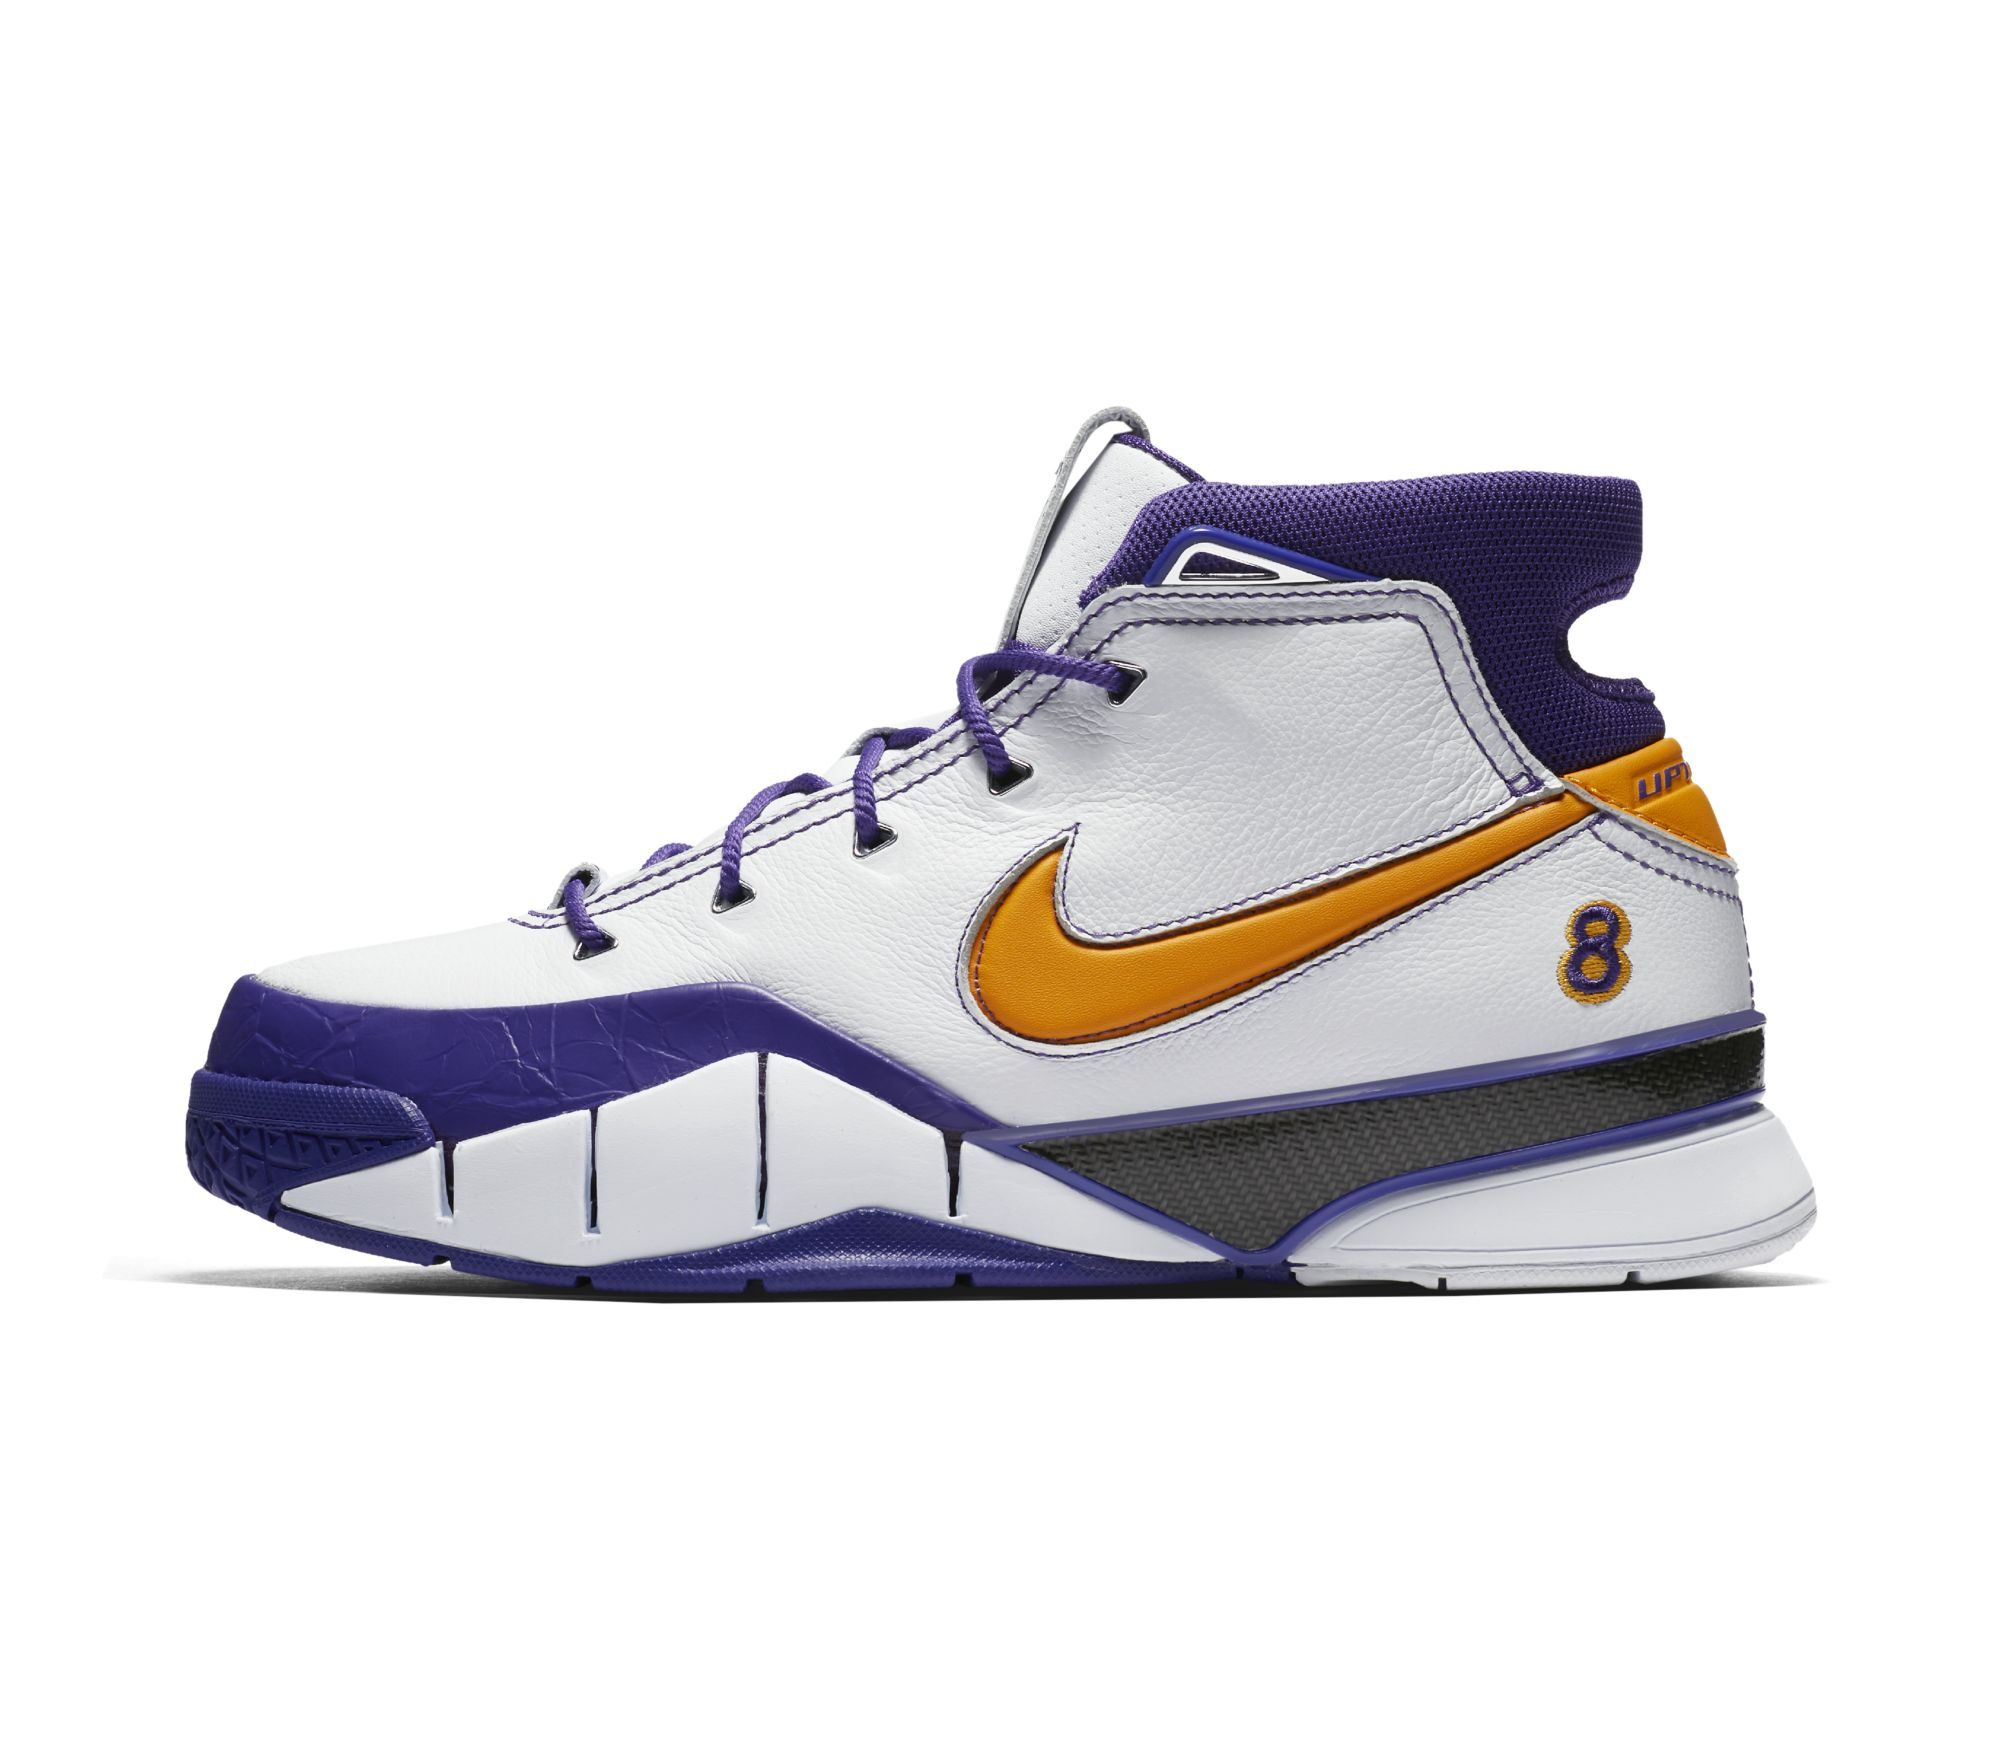 a6594e9f158 ... purchase another nike kobe 1 protro quickstrike in lakers colors is  9e38a bef33